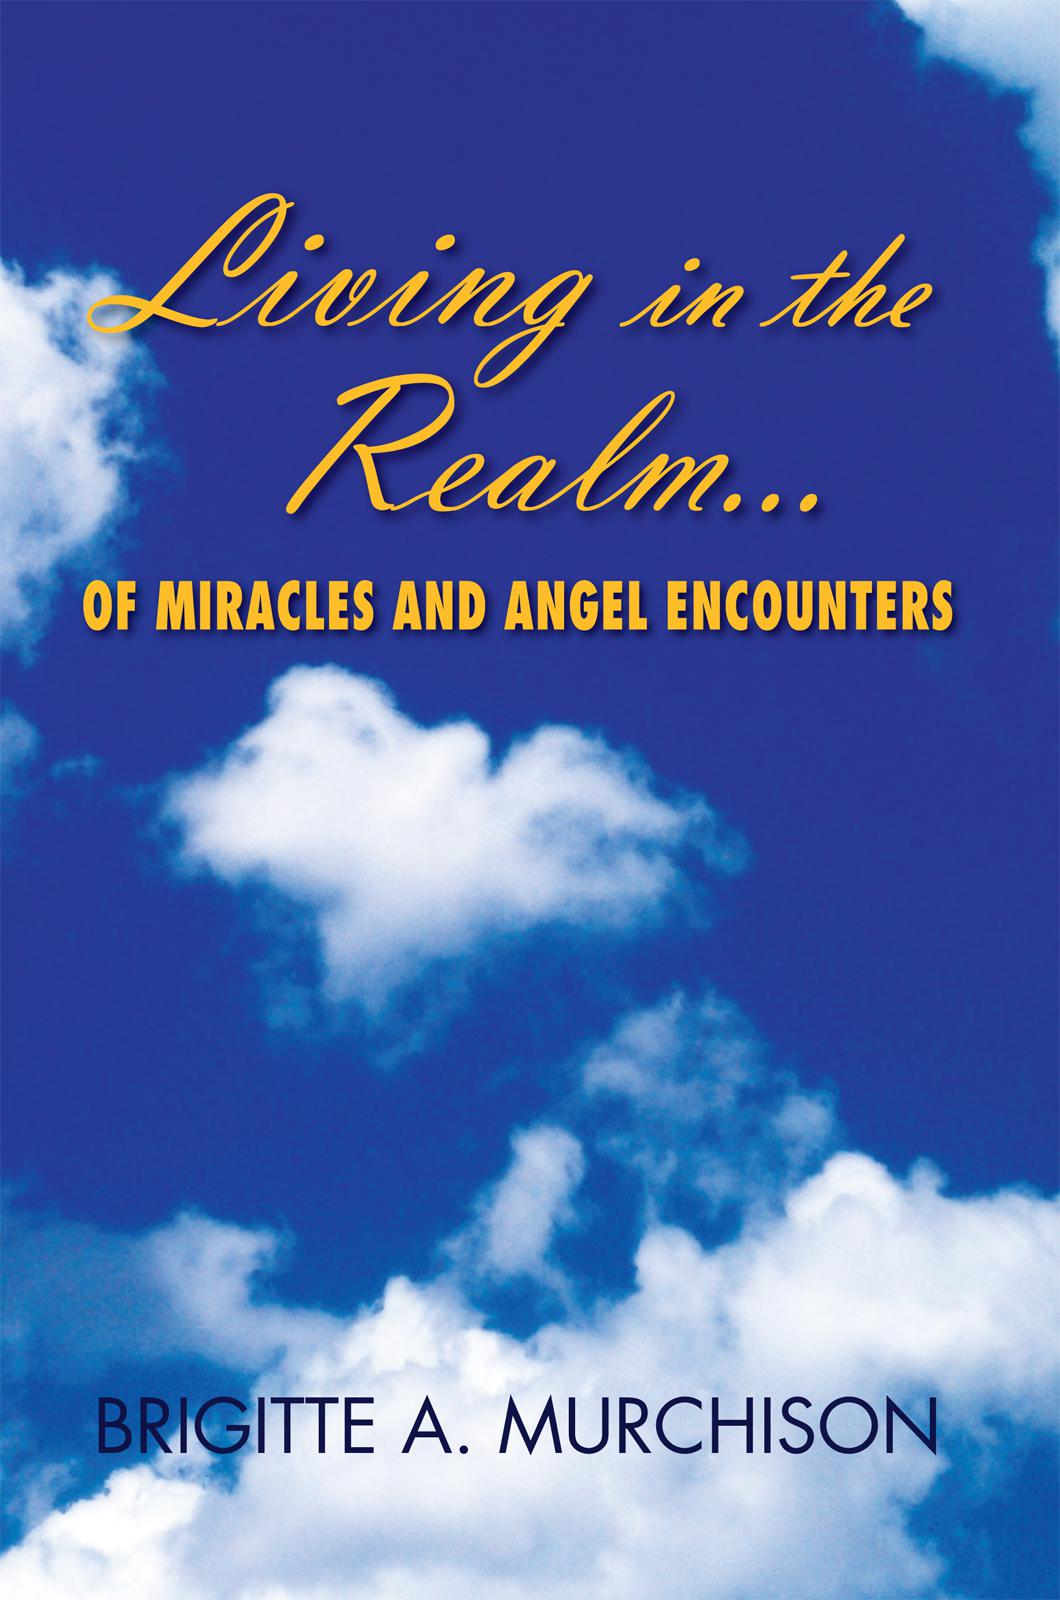 Living in the Realm of Miracles and Angel Encounters By: Brigitte A. Murchison